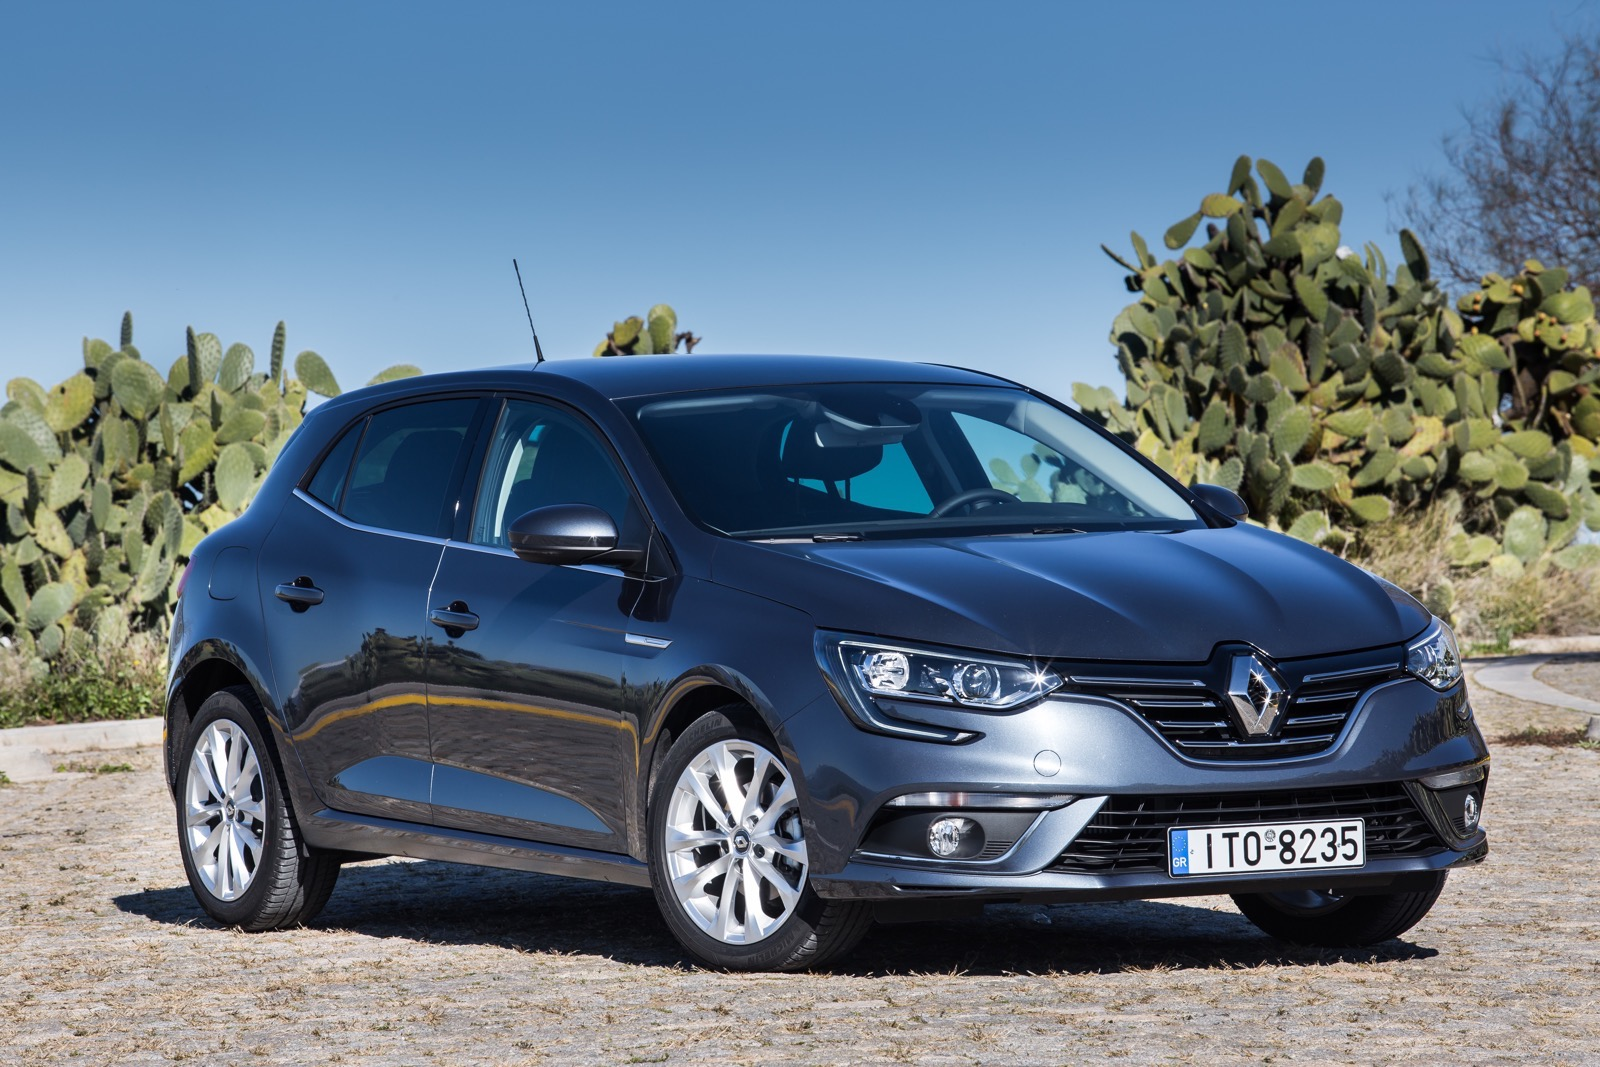 First_Drive_Renault_Megane_27